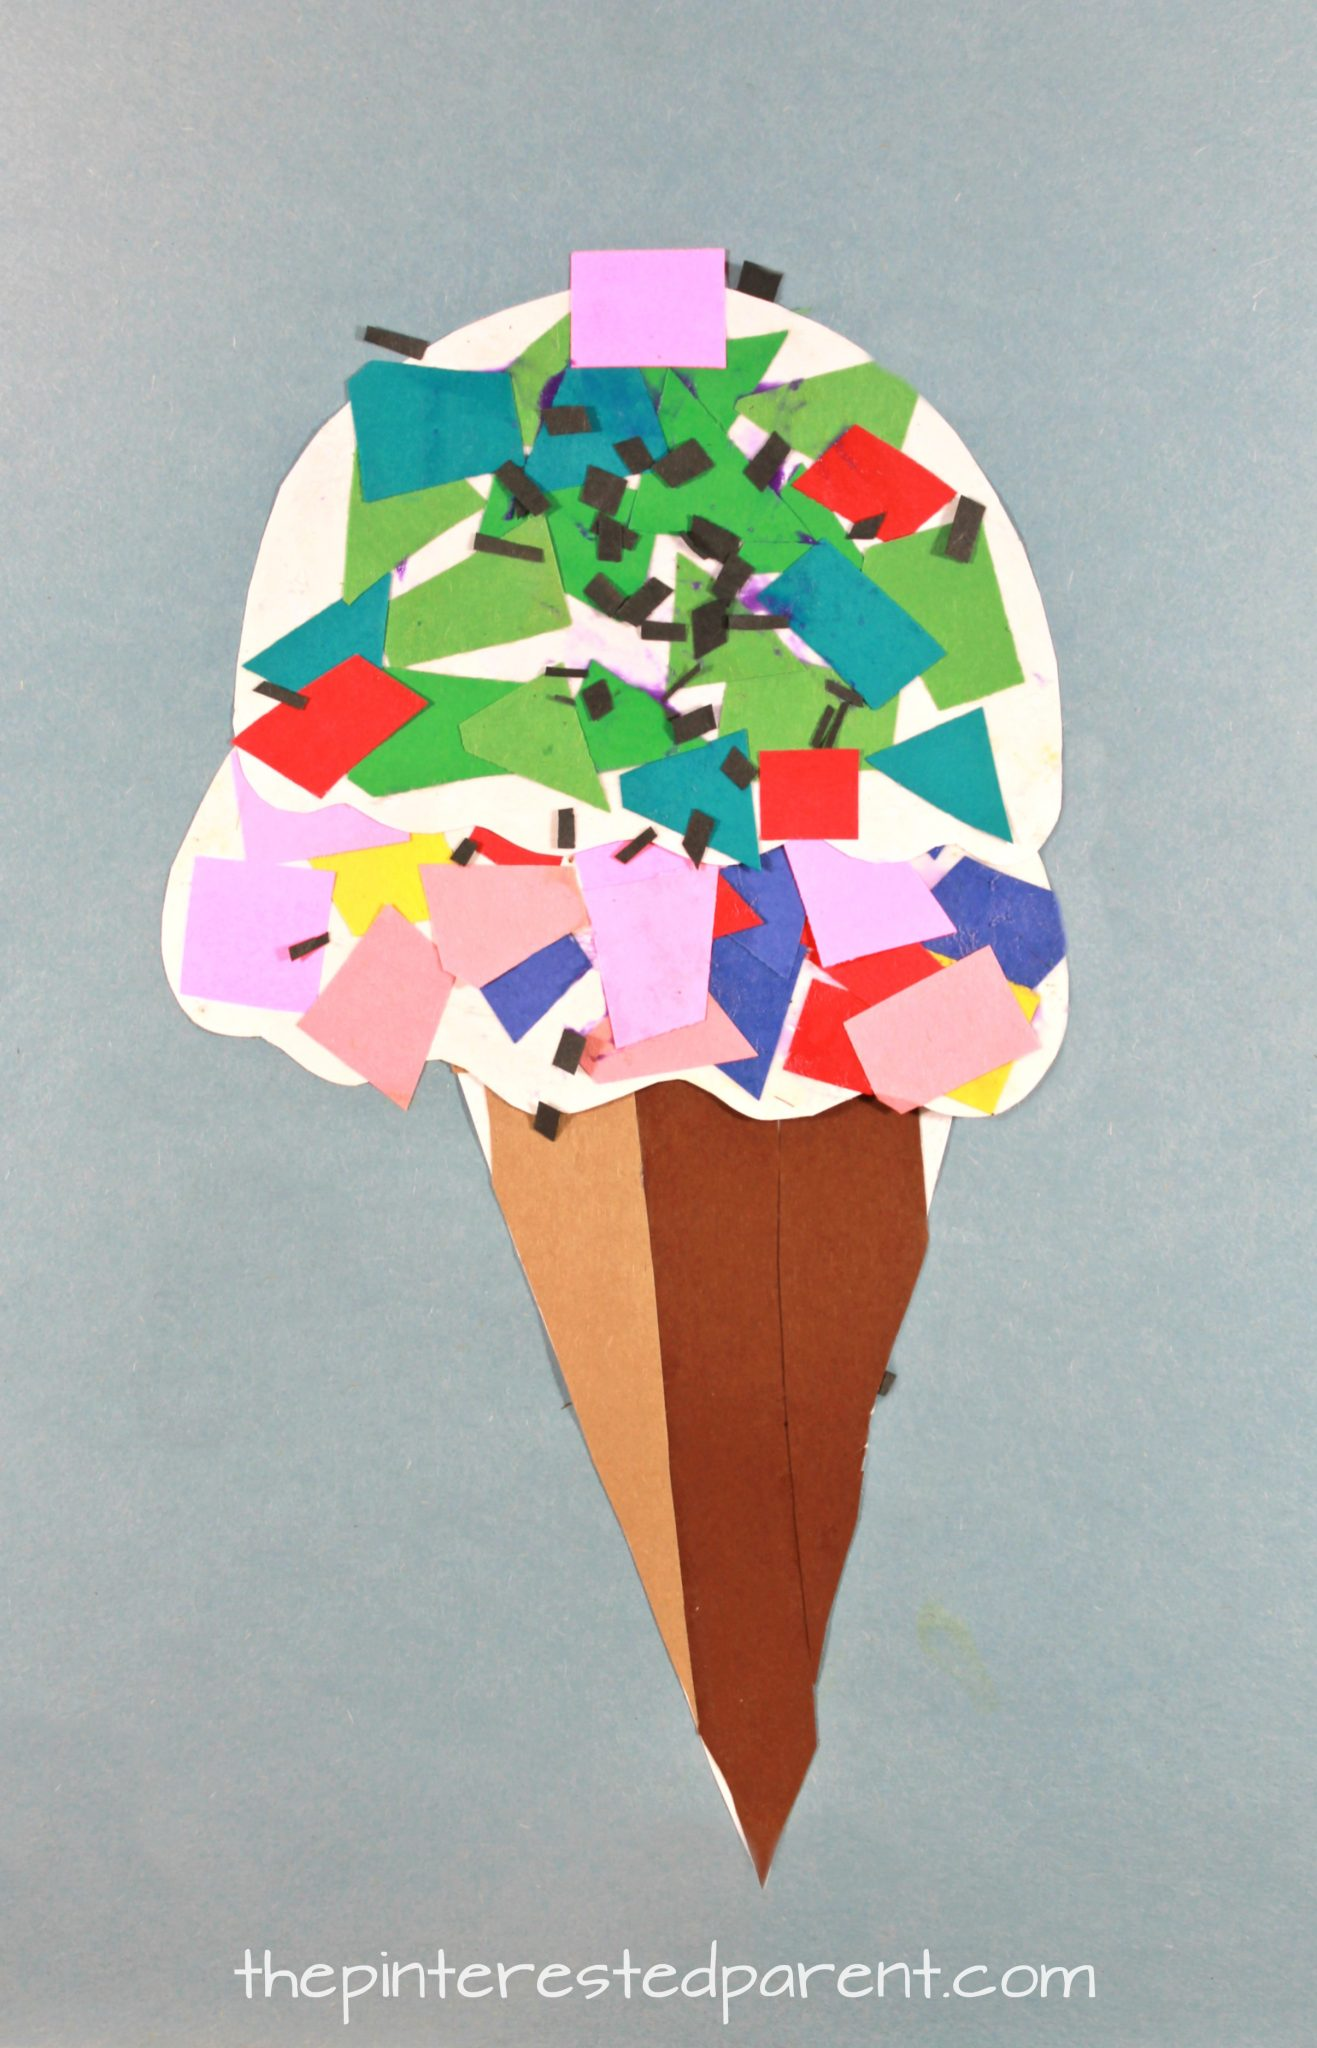 photograph regarding Free Printable Paper Crafts referred to as Printable Paper Mosaic Ice Product Cone The Pinterested Mum or dad